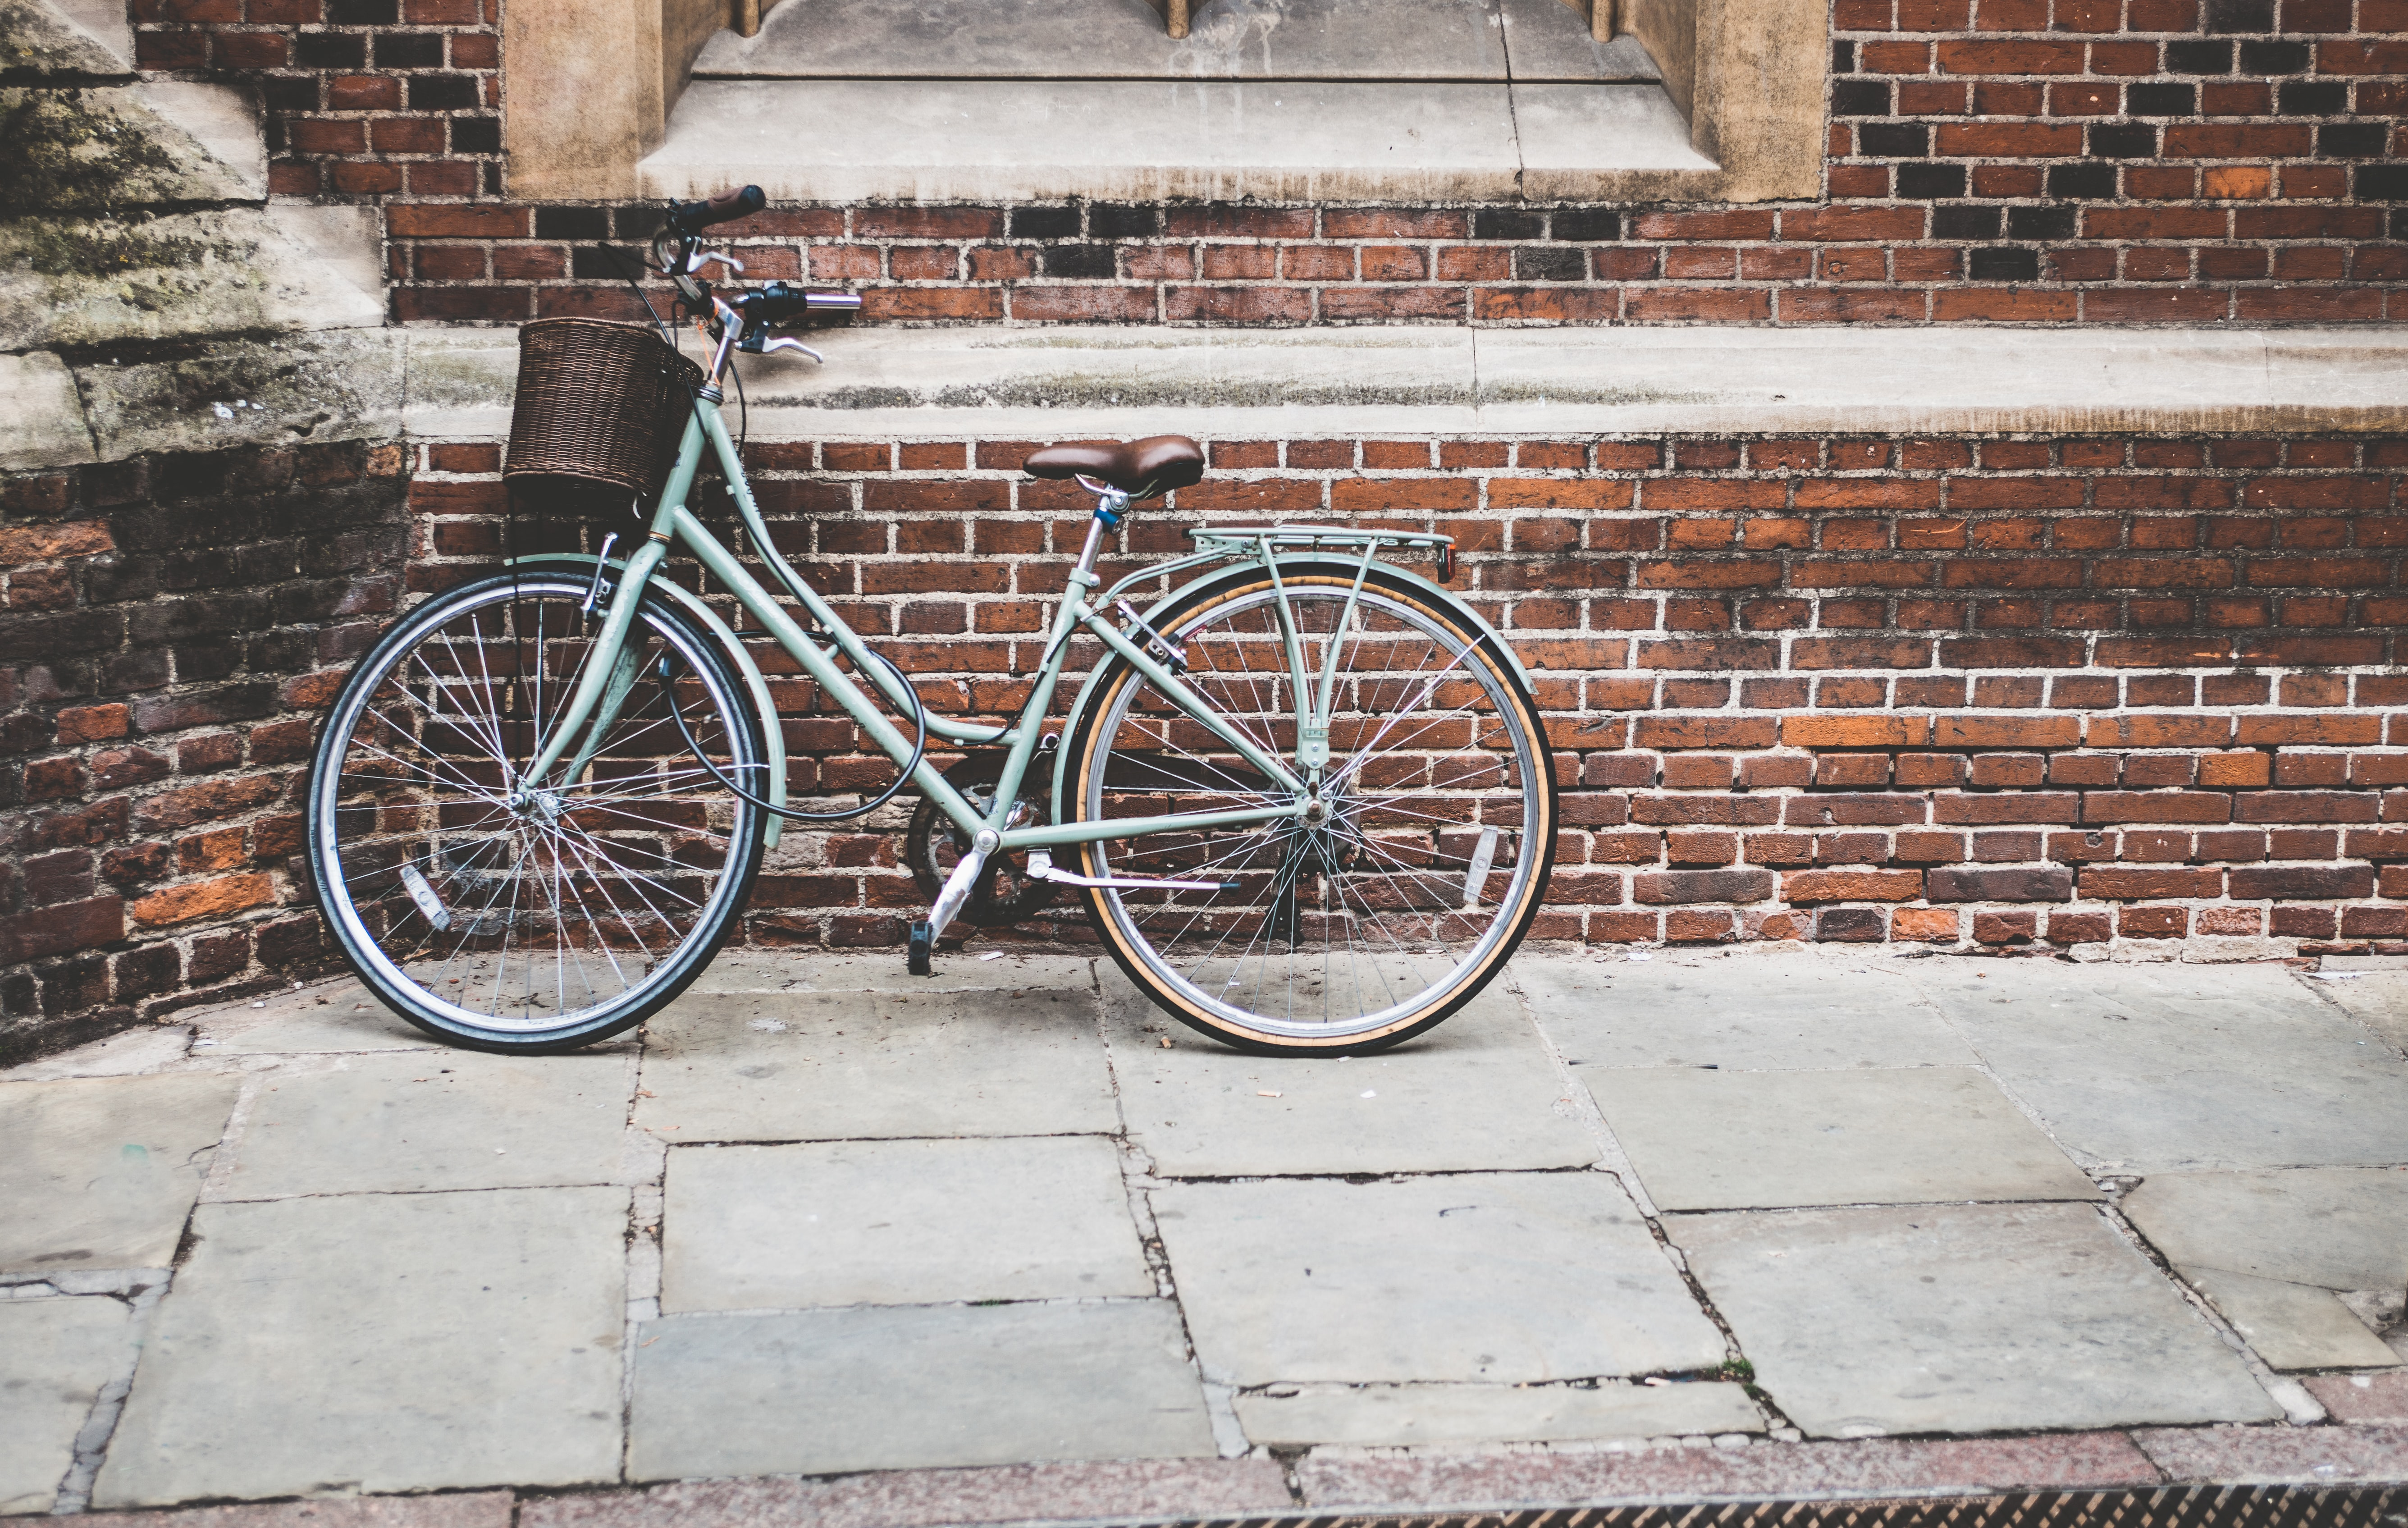 A green bicycle leans against a brick wall in Cambridge